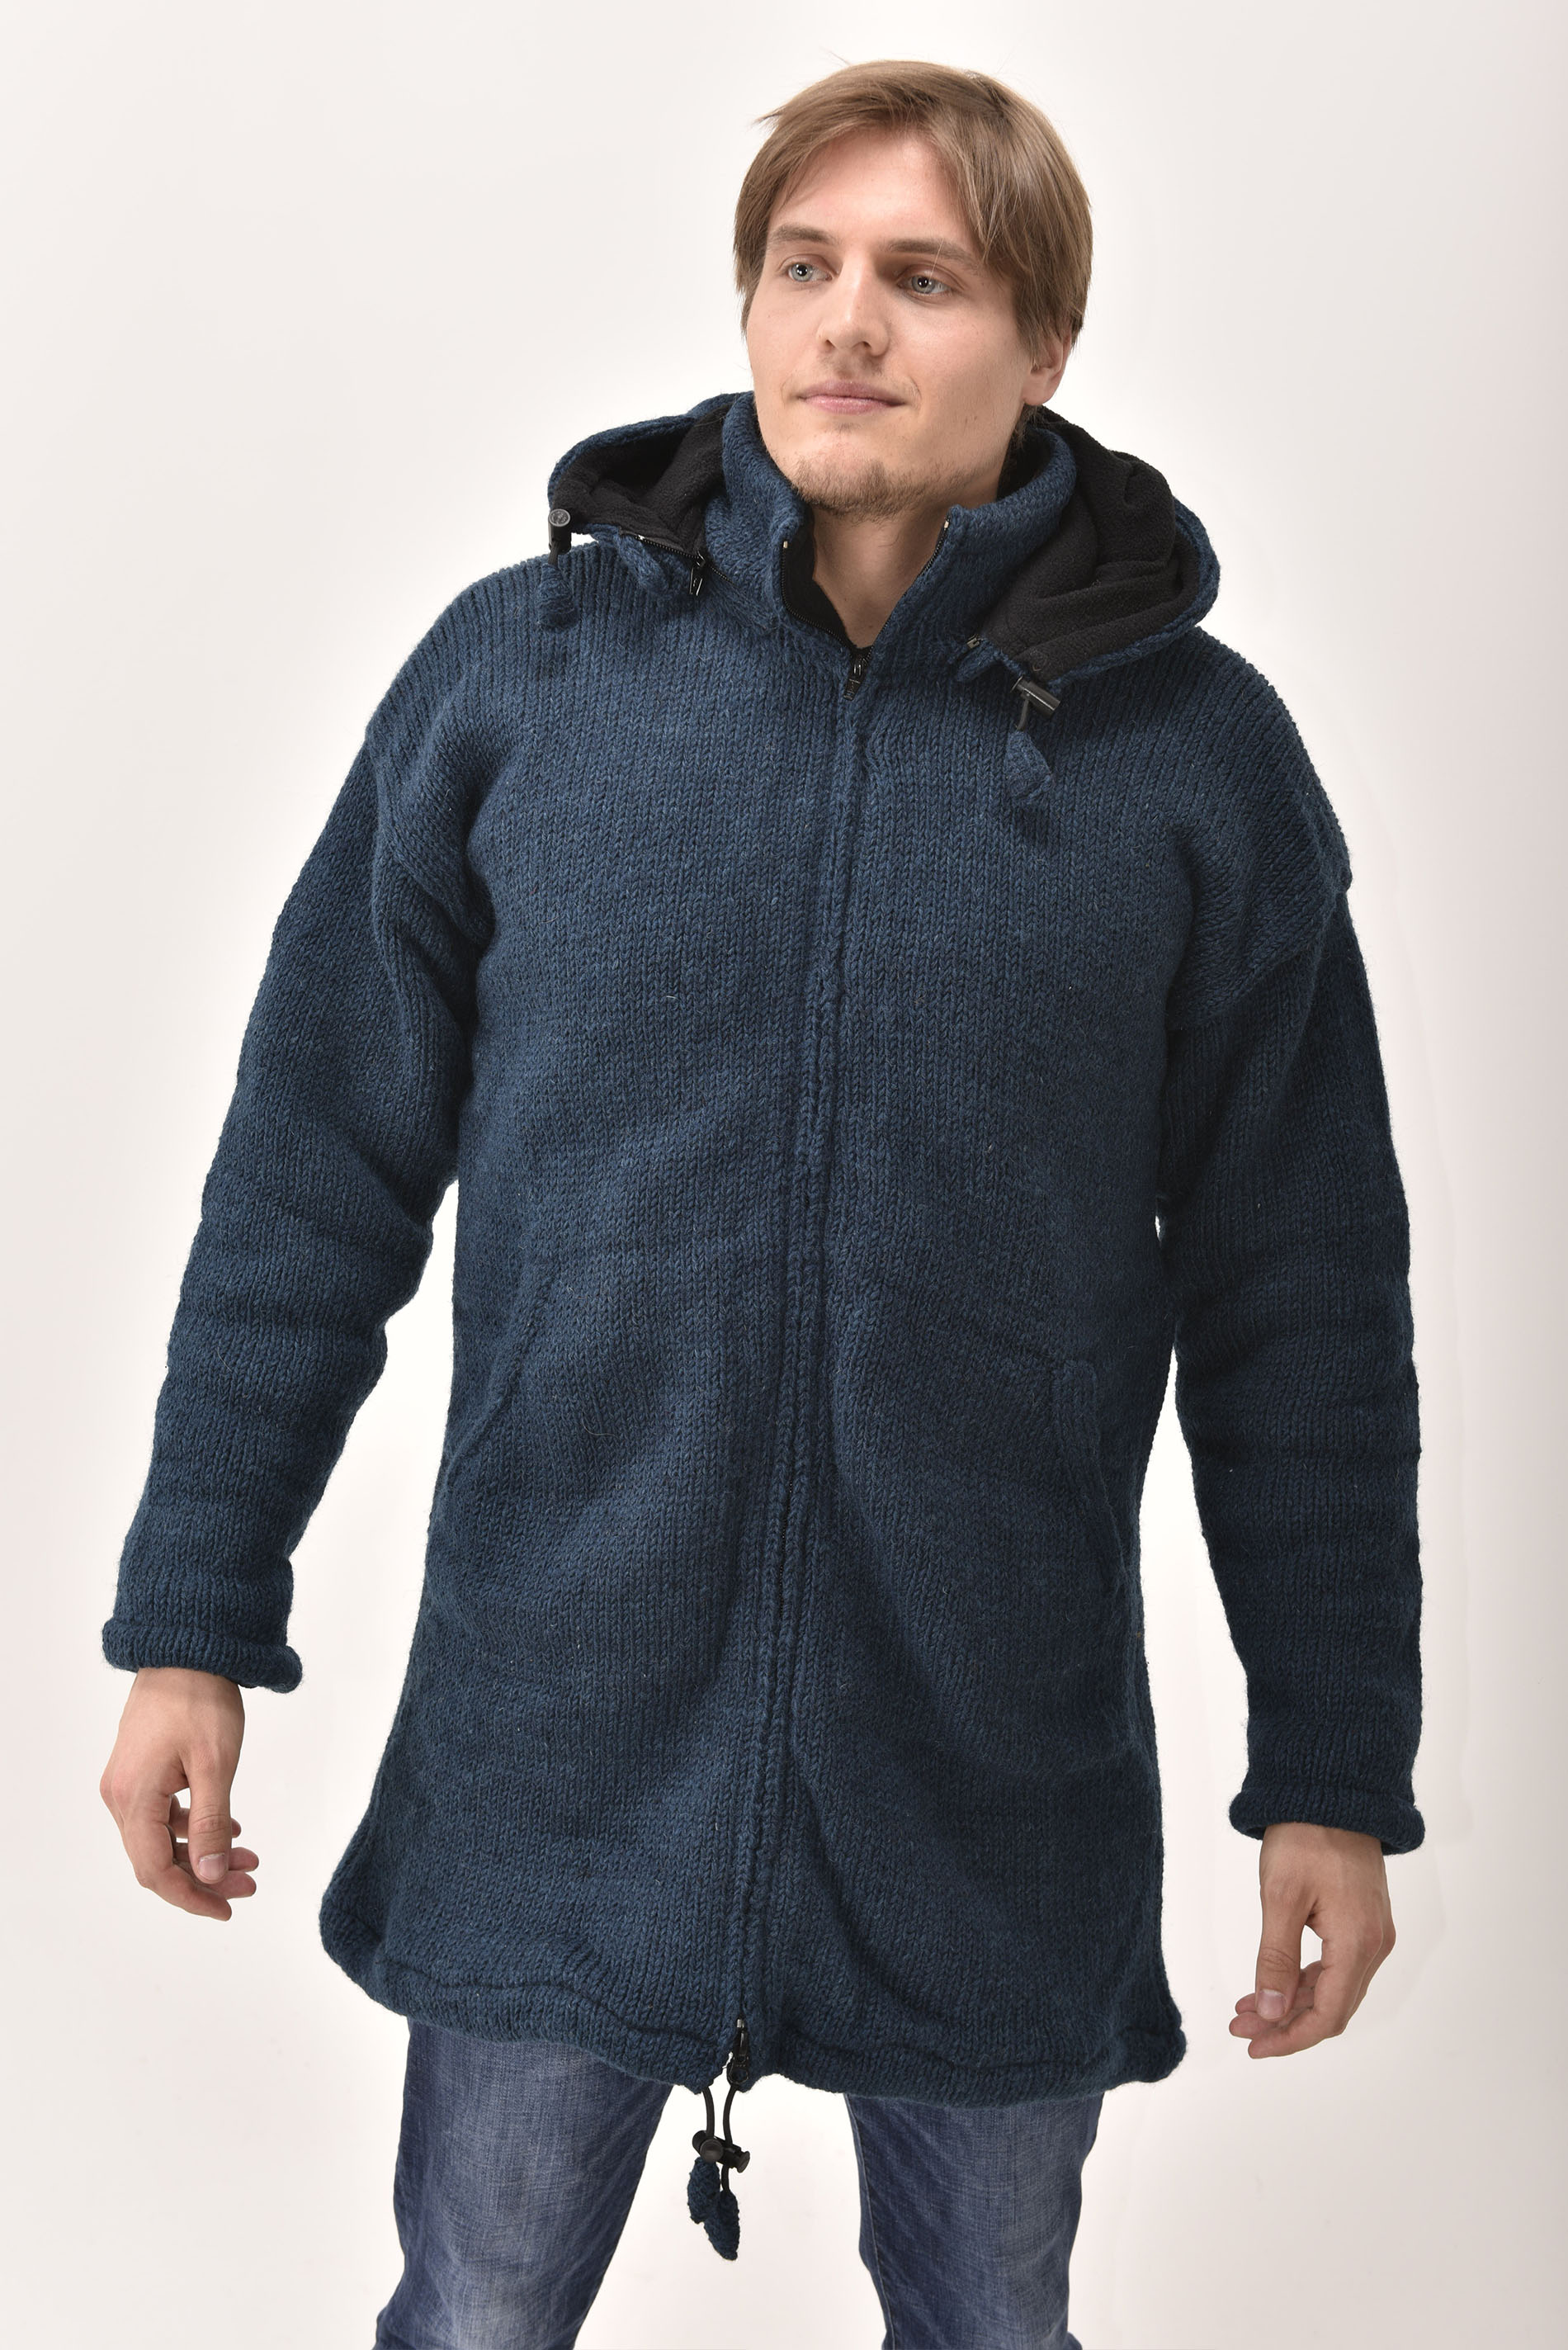 Himalayan Mountain Jacket Long Length, Solid Dark Blue